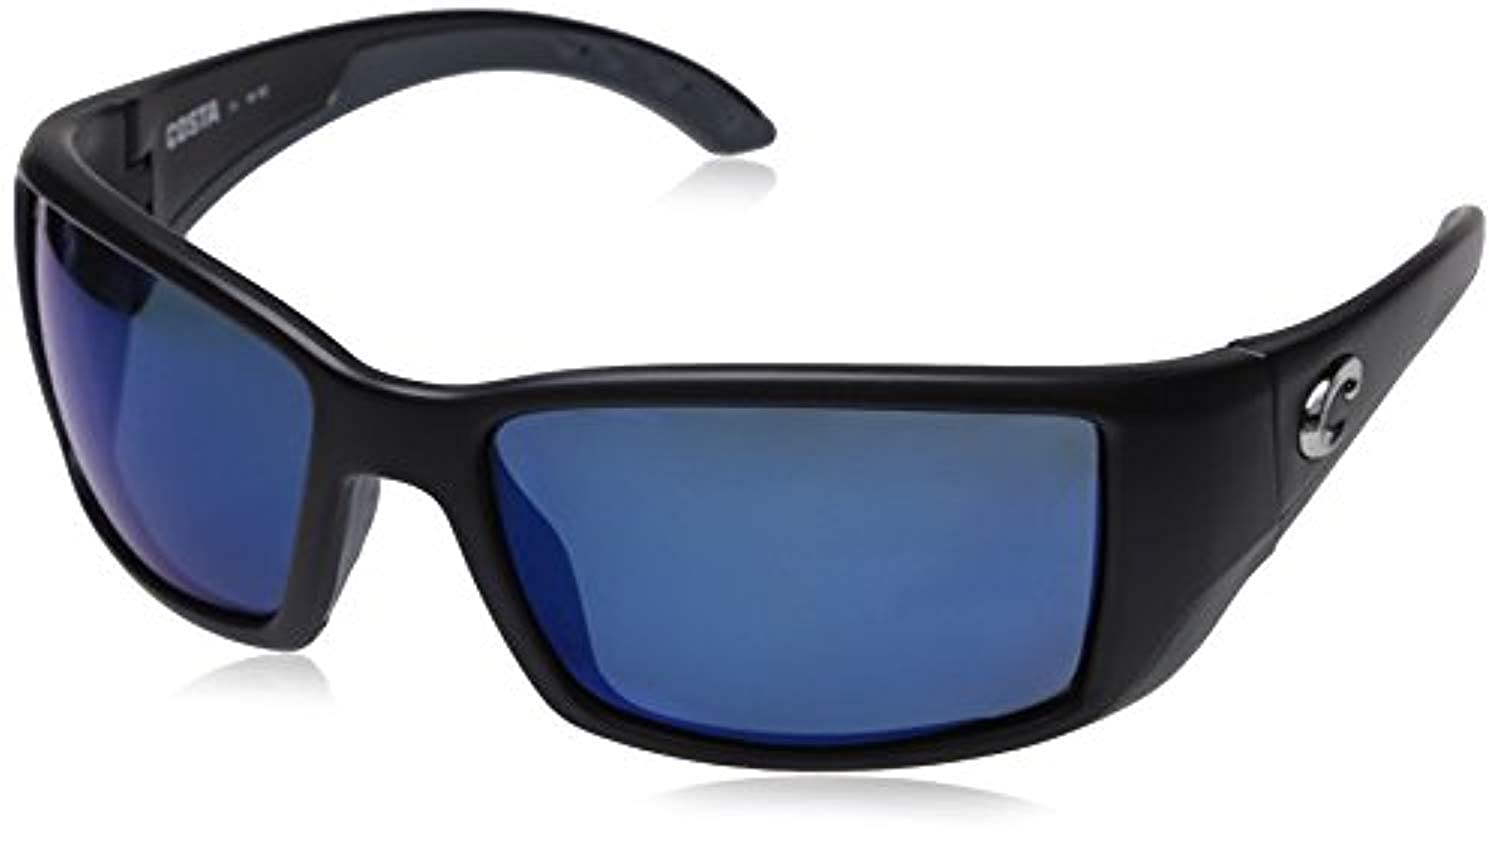 Running Bundle Costa Blackfin Sunglasses /& Earbuds